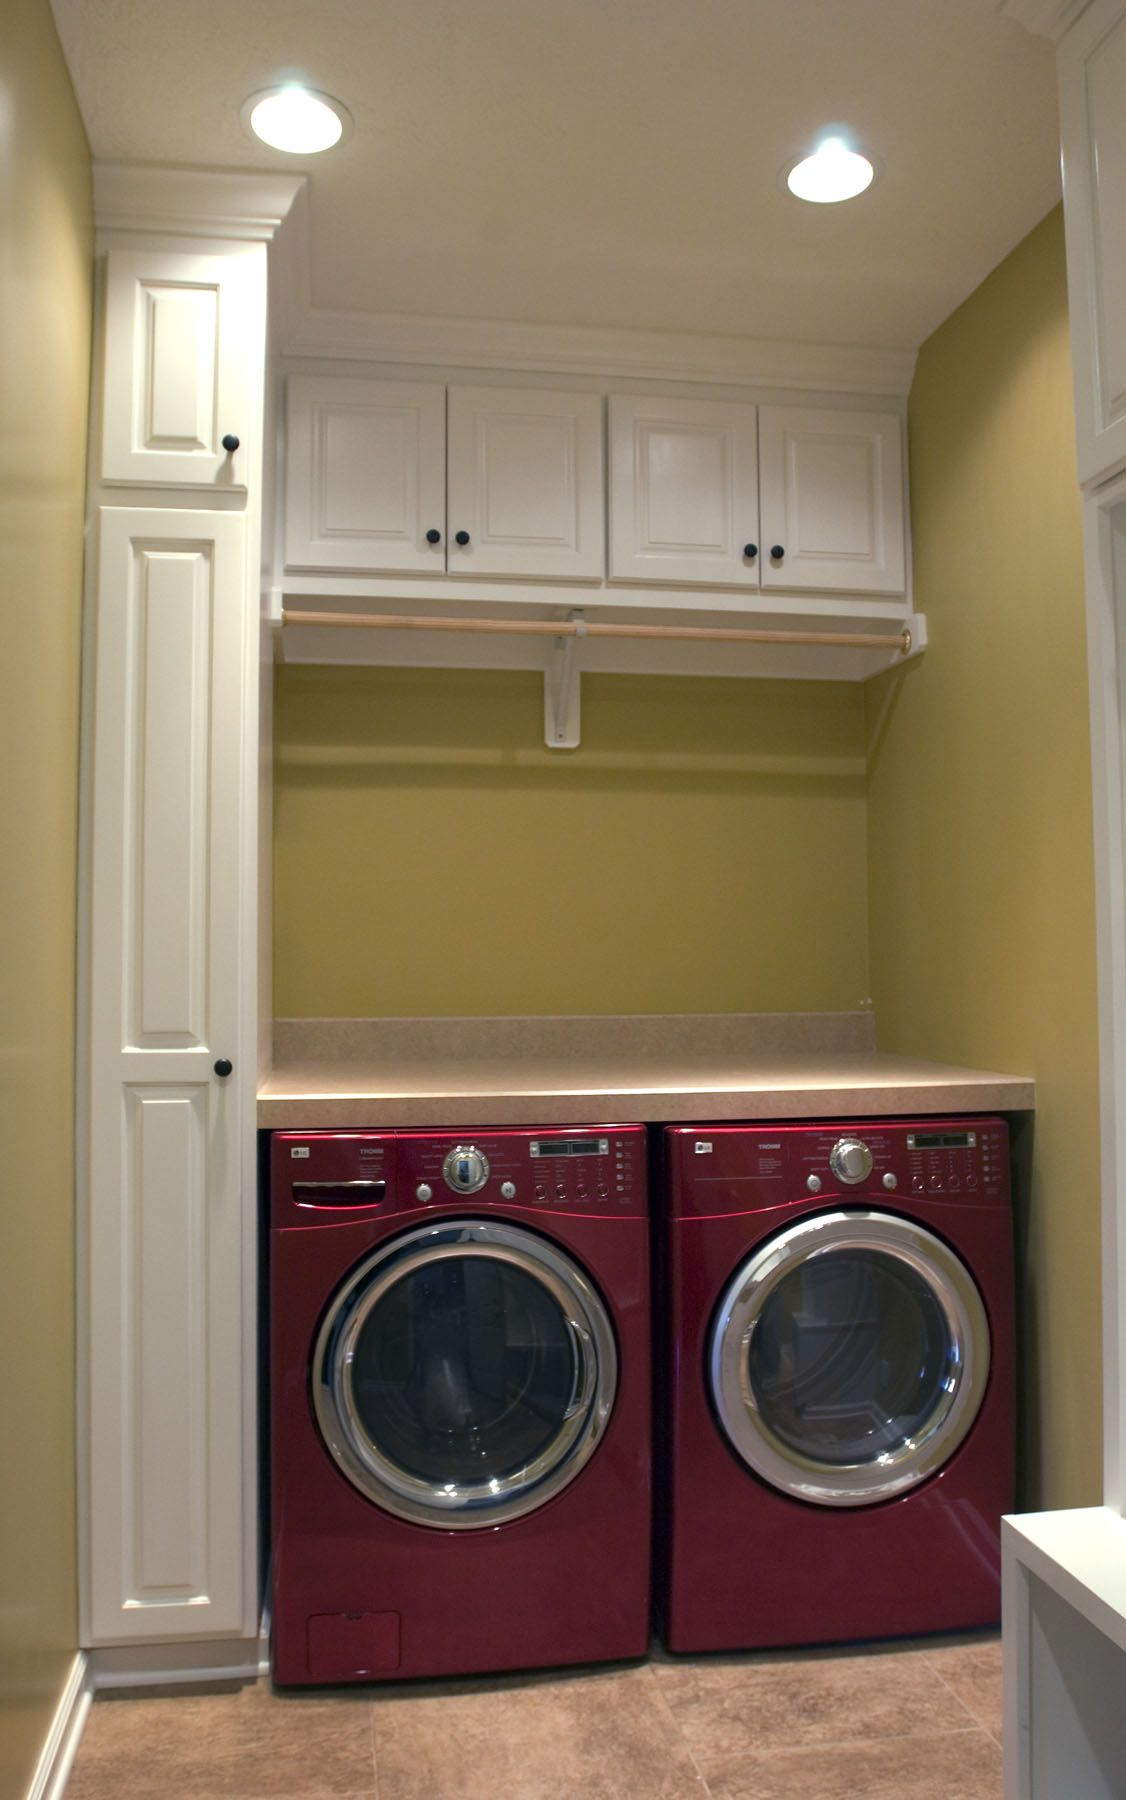 Simple Small Laundry Room Design With Minimalist Cabinet Set Ideas